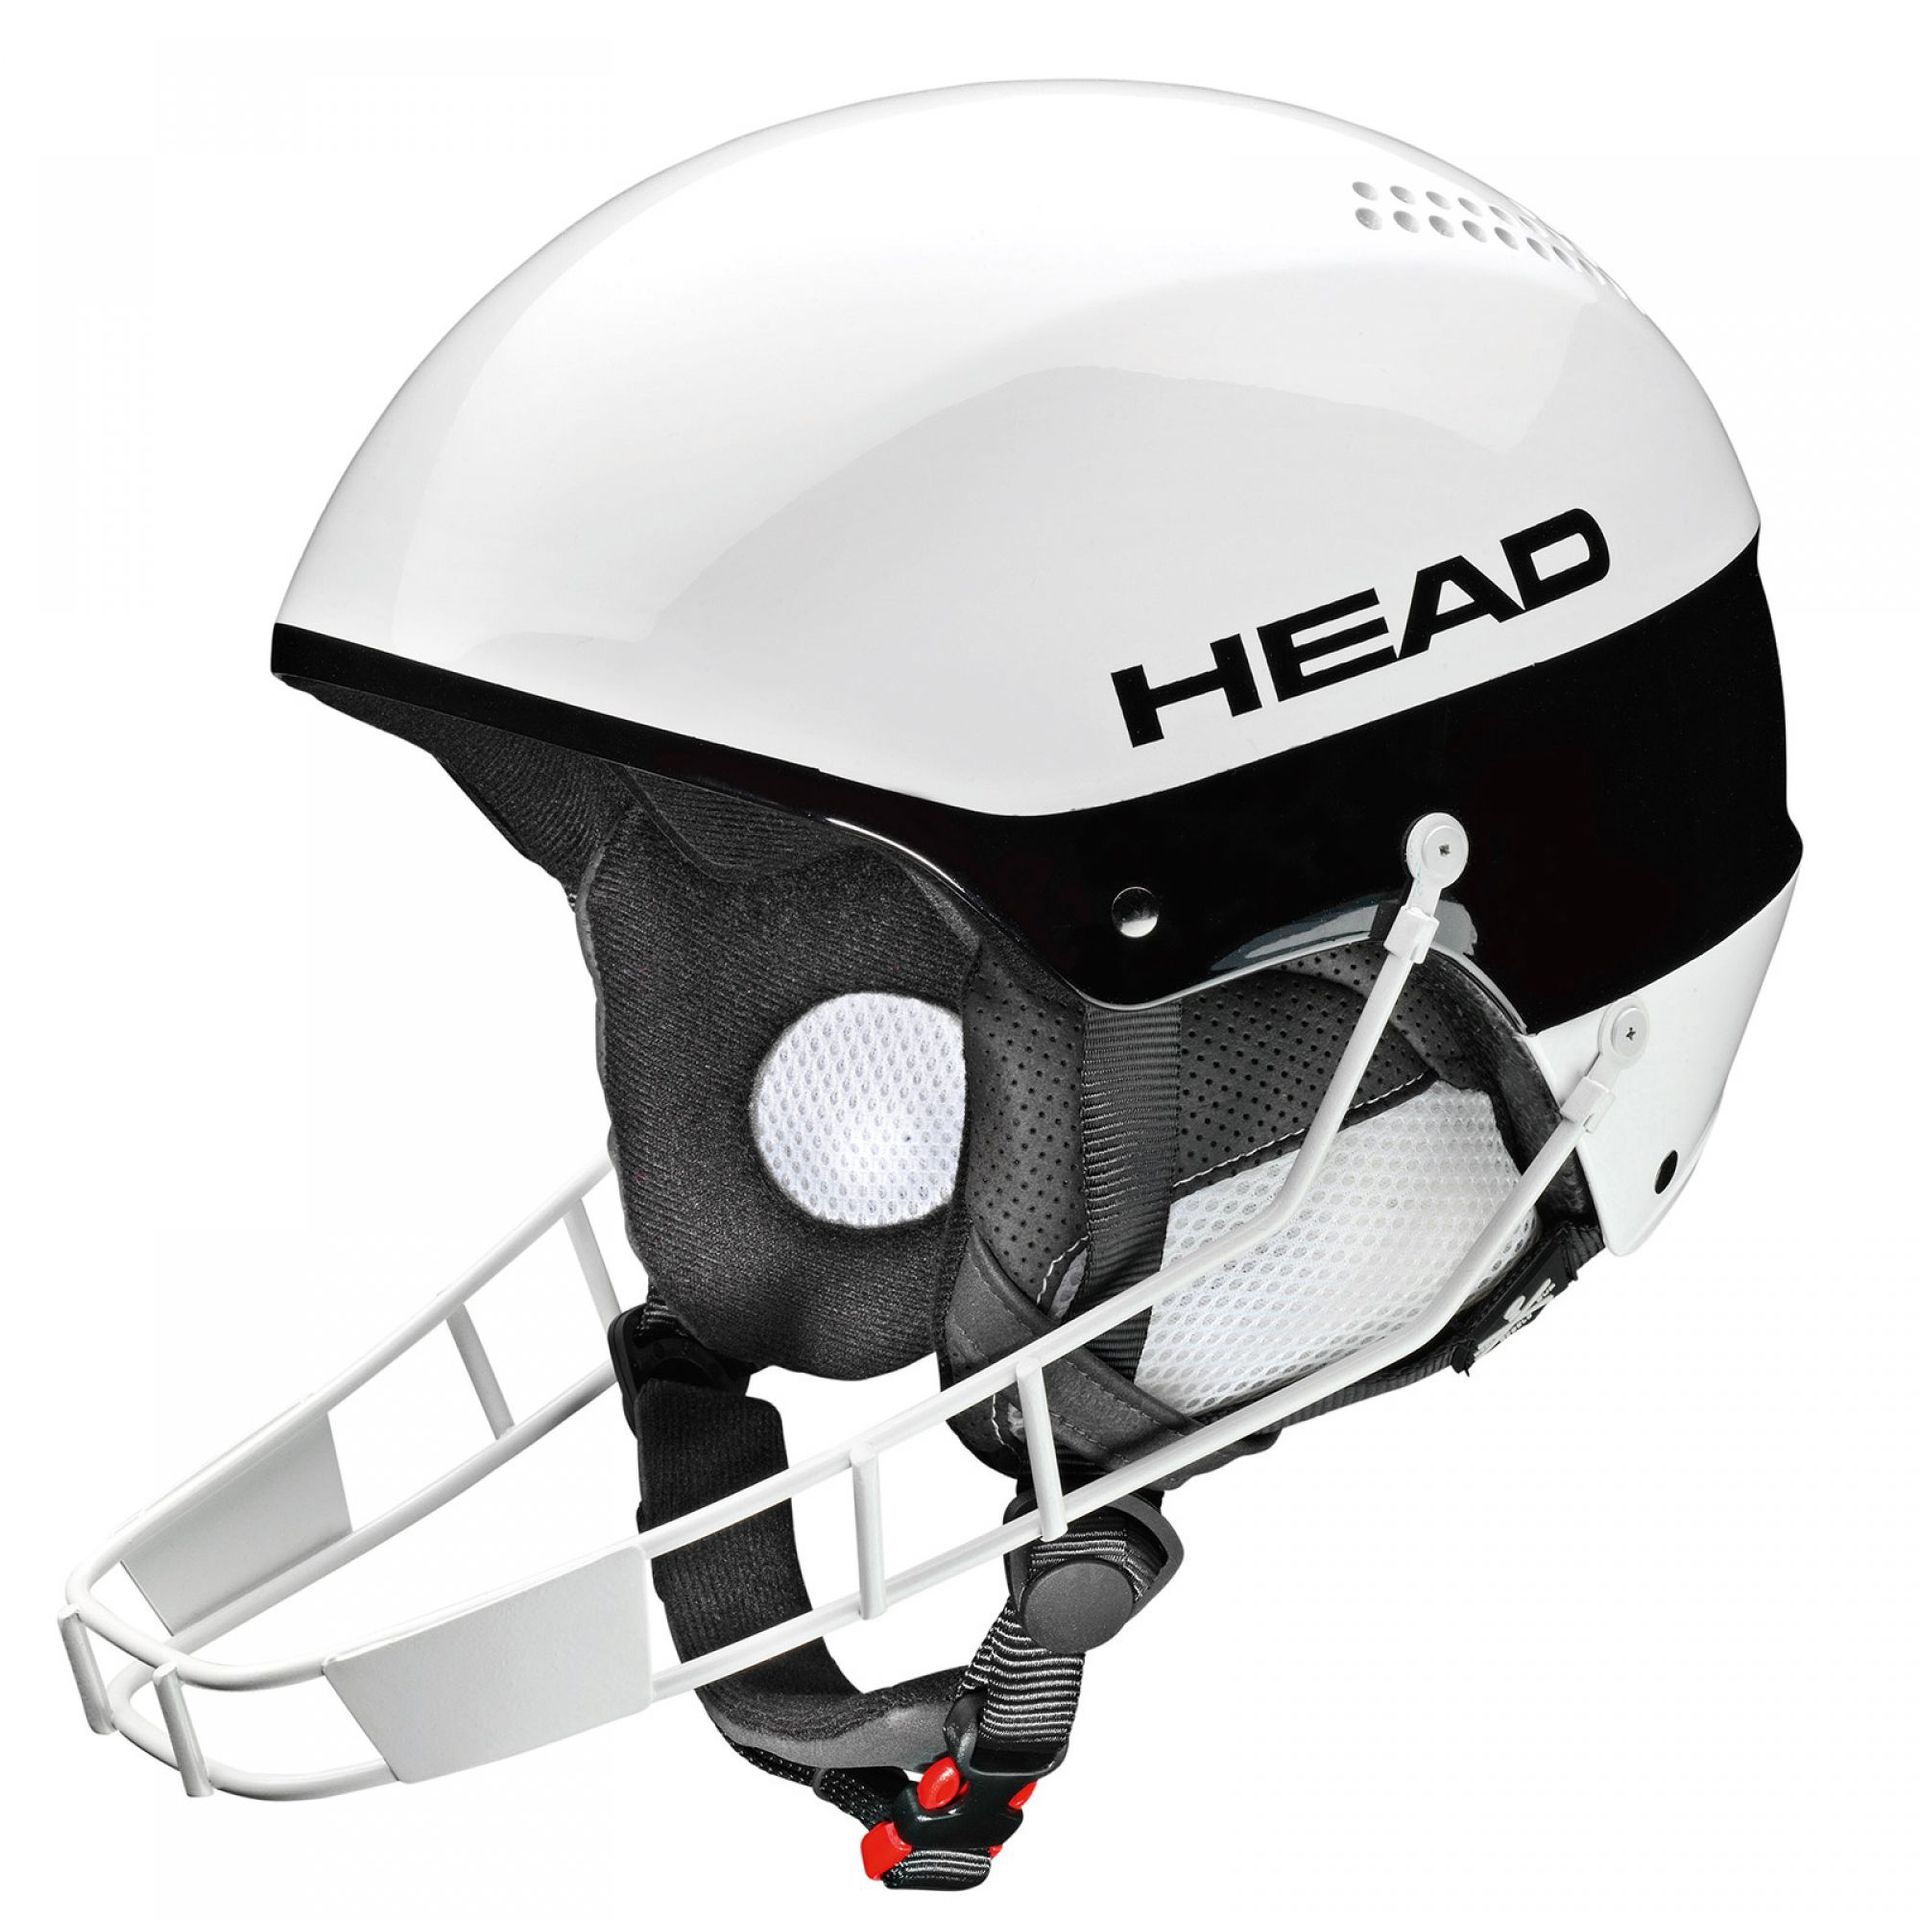 KASK HEAD #STIVOT SL CHINGUARD WHITE BLACK